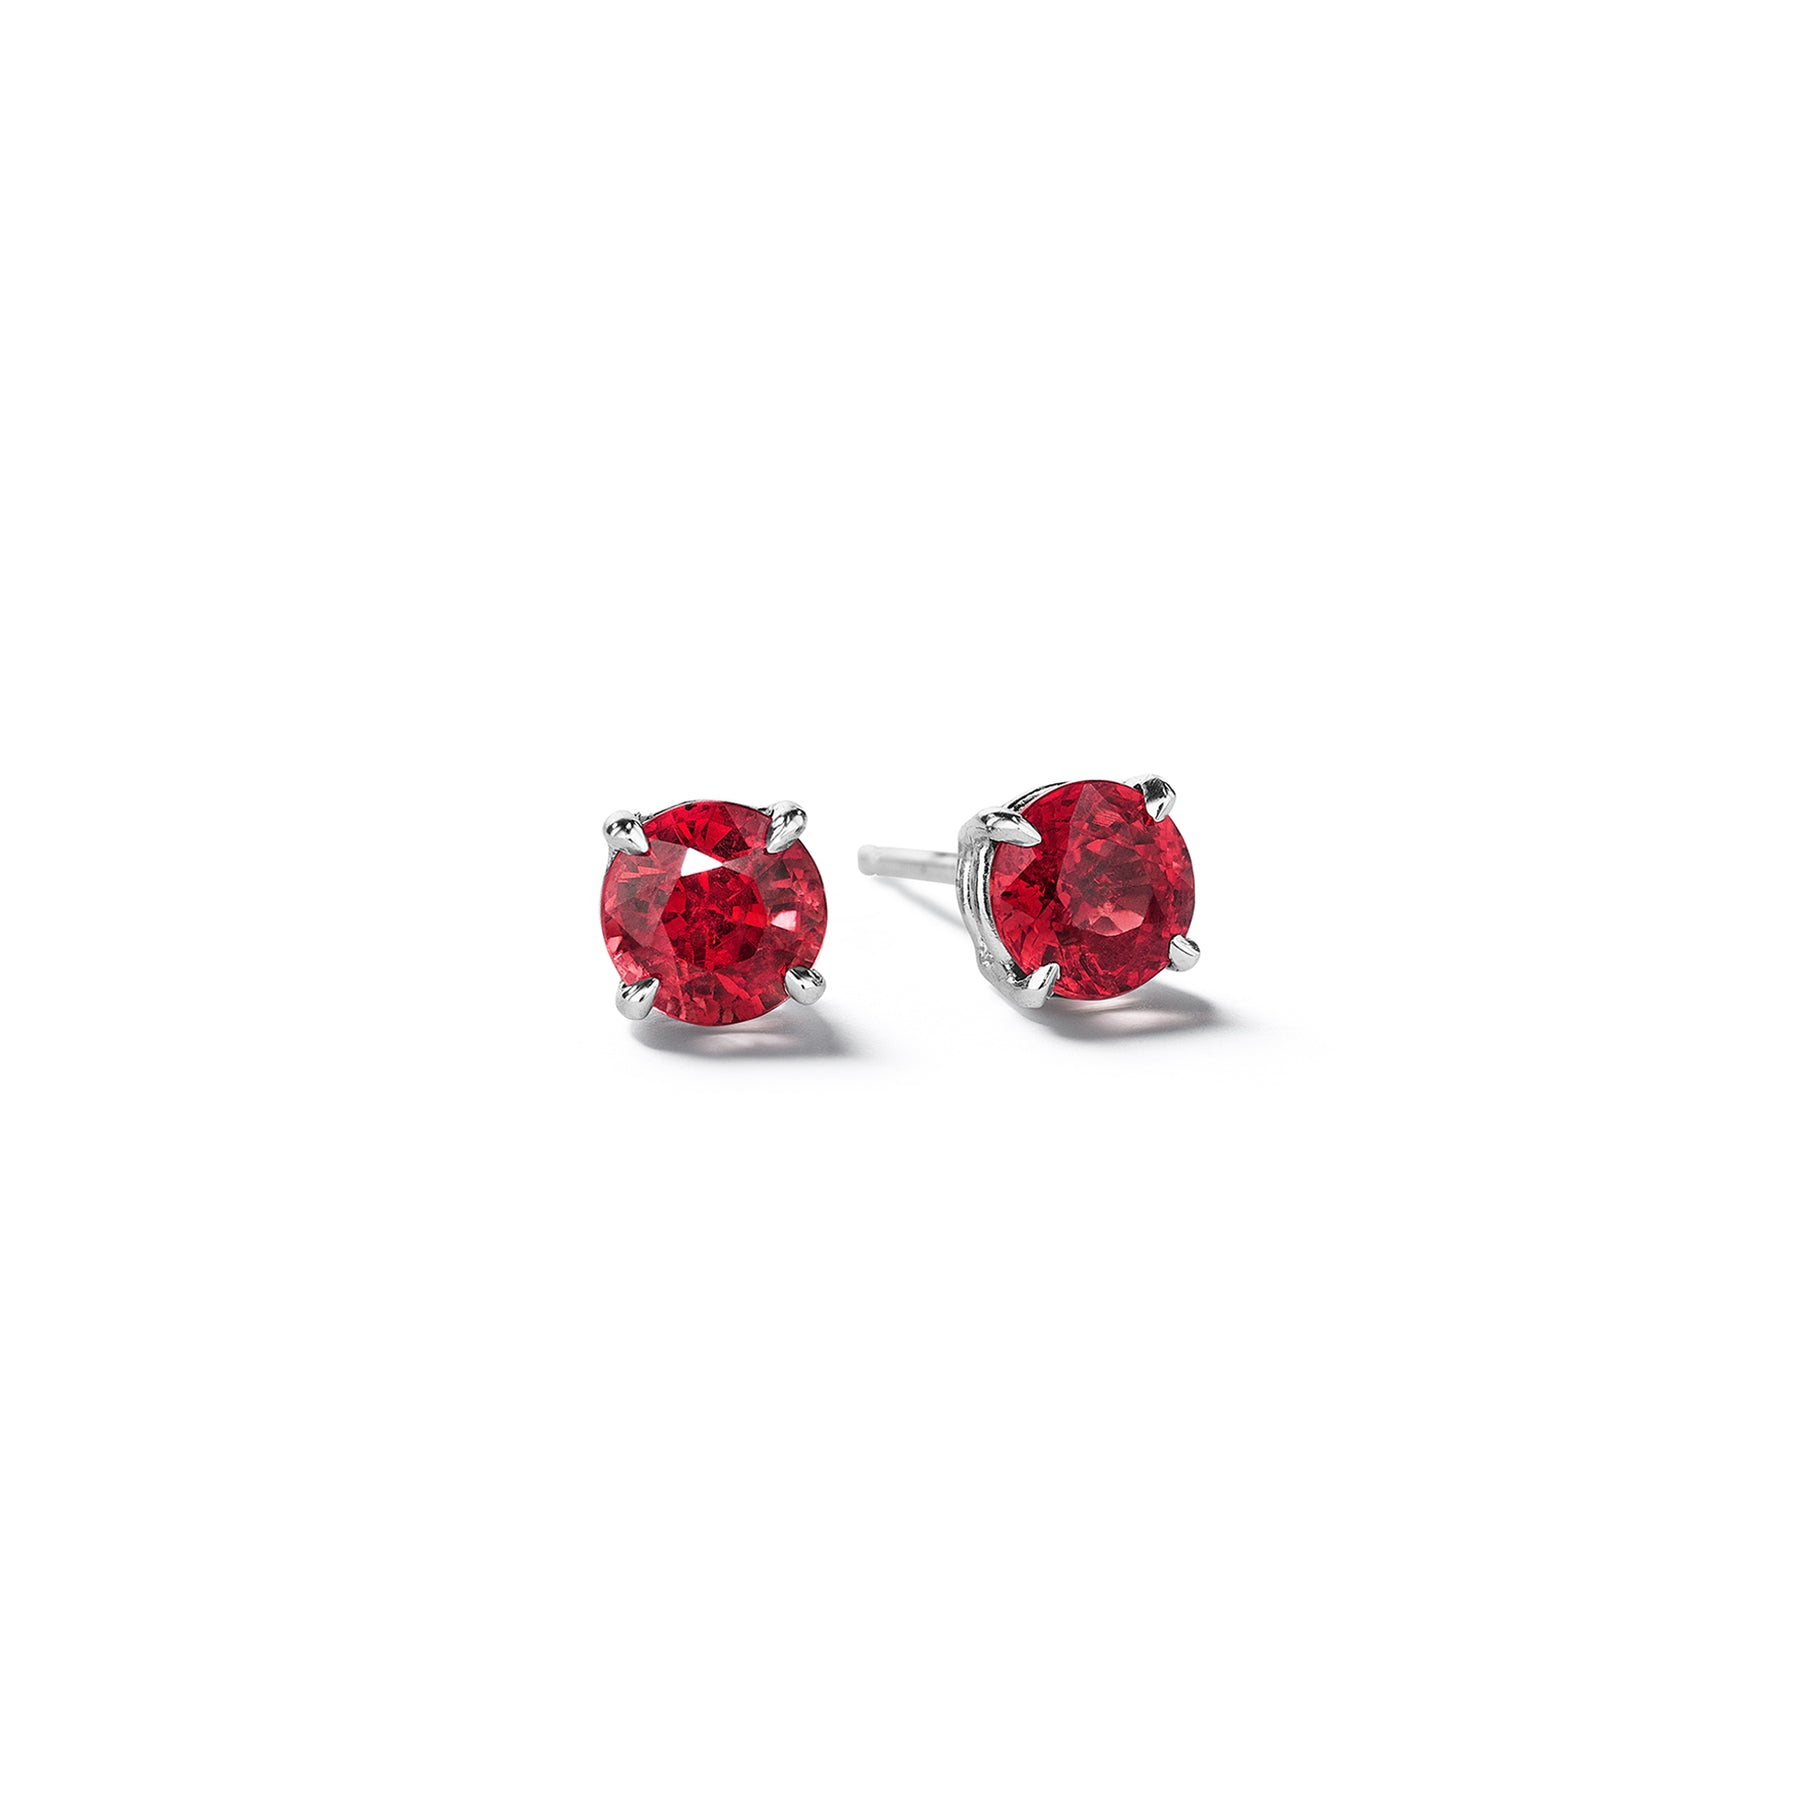 Round-brilliant-cut-ruby-stud-earrings_18k White Gold